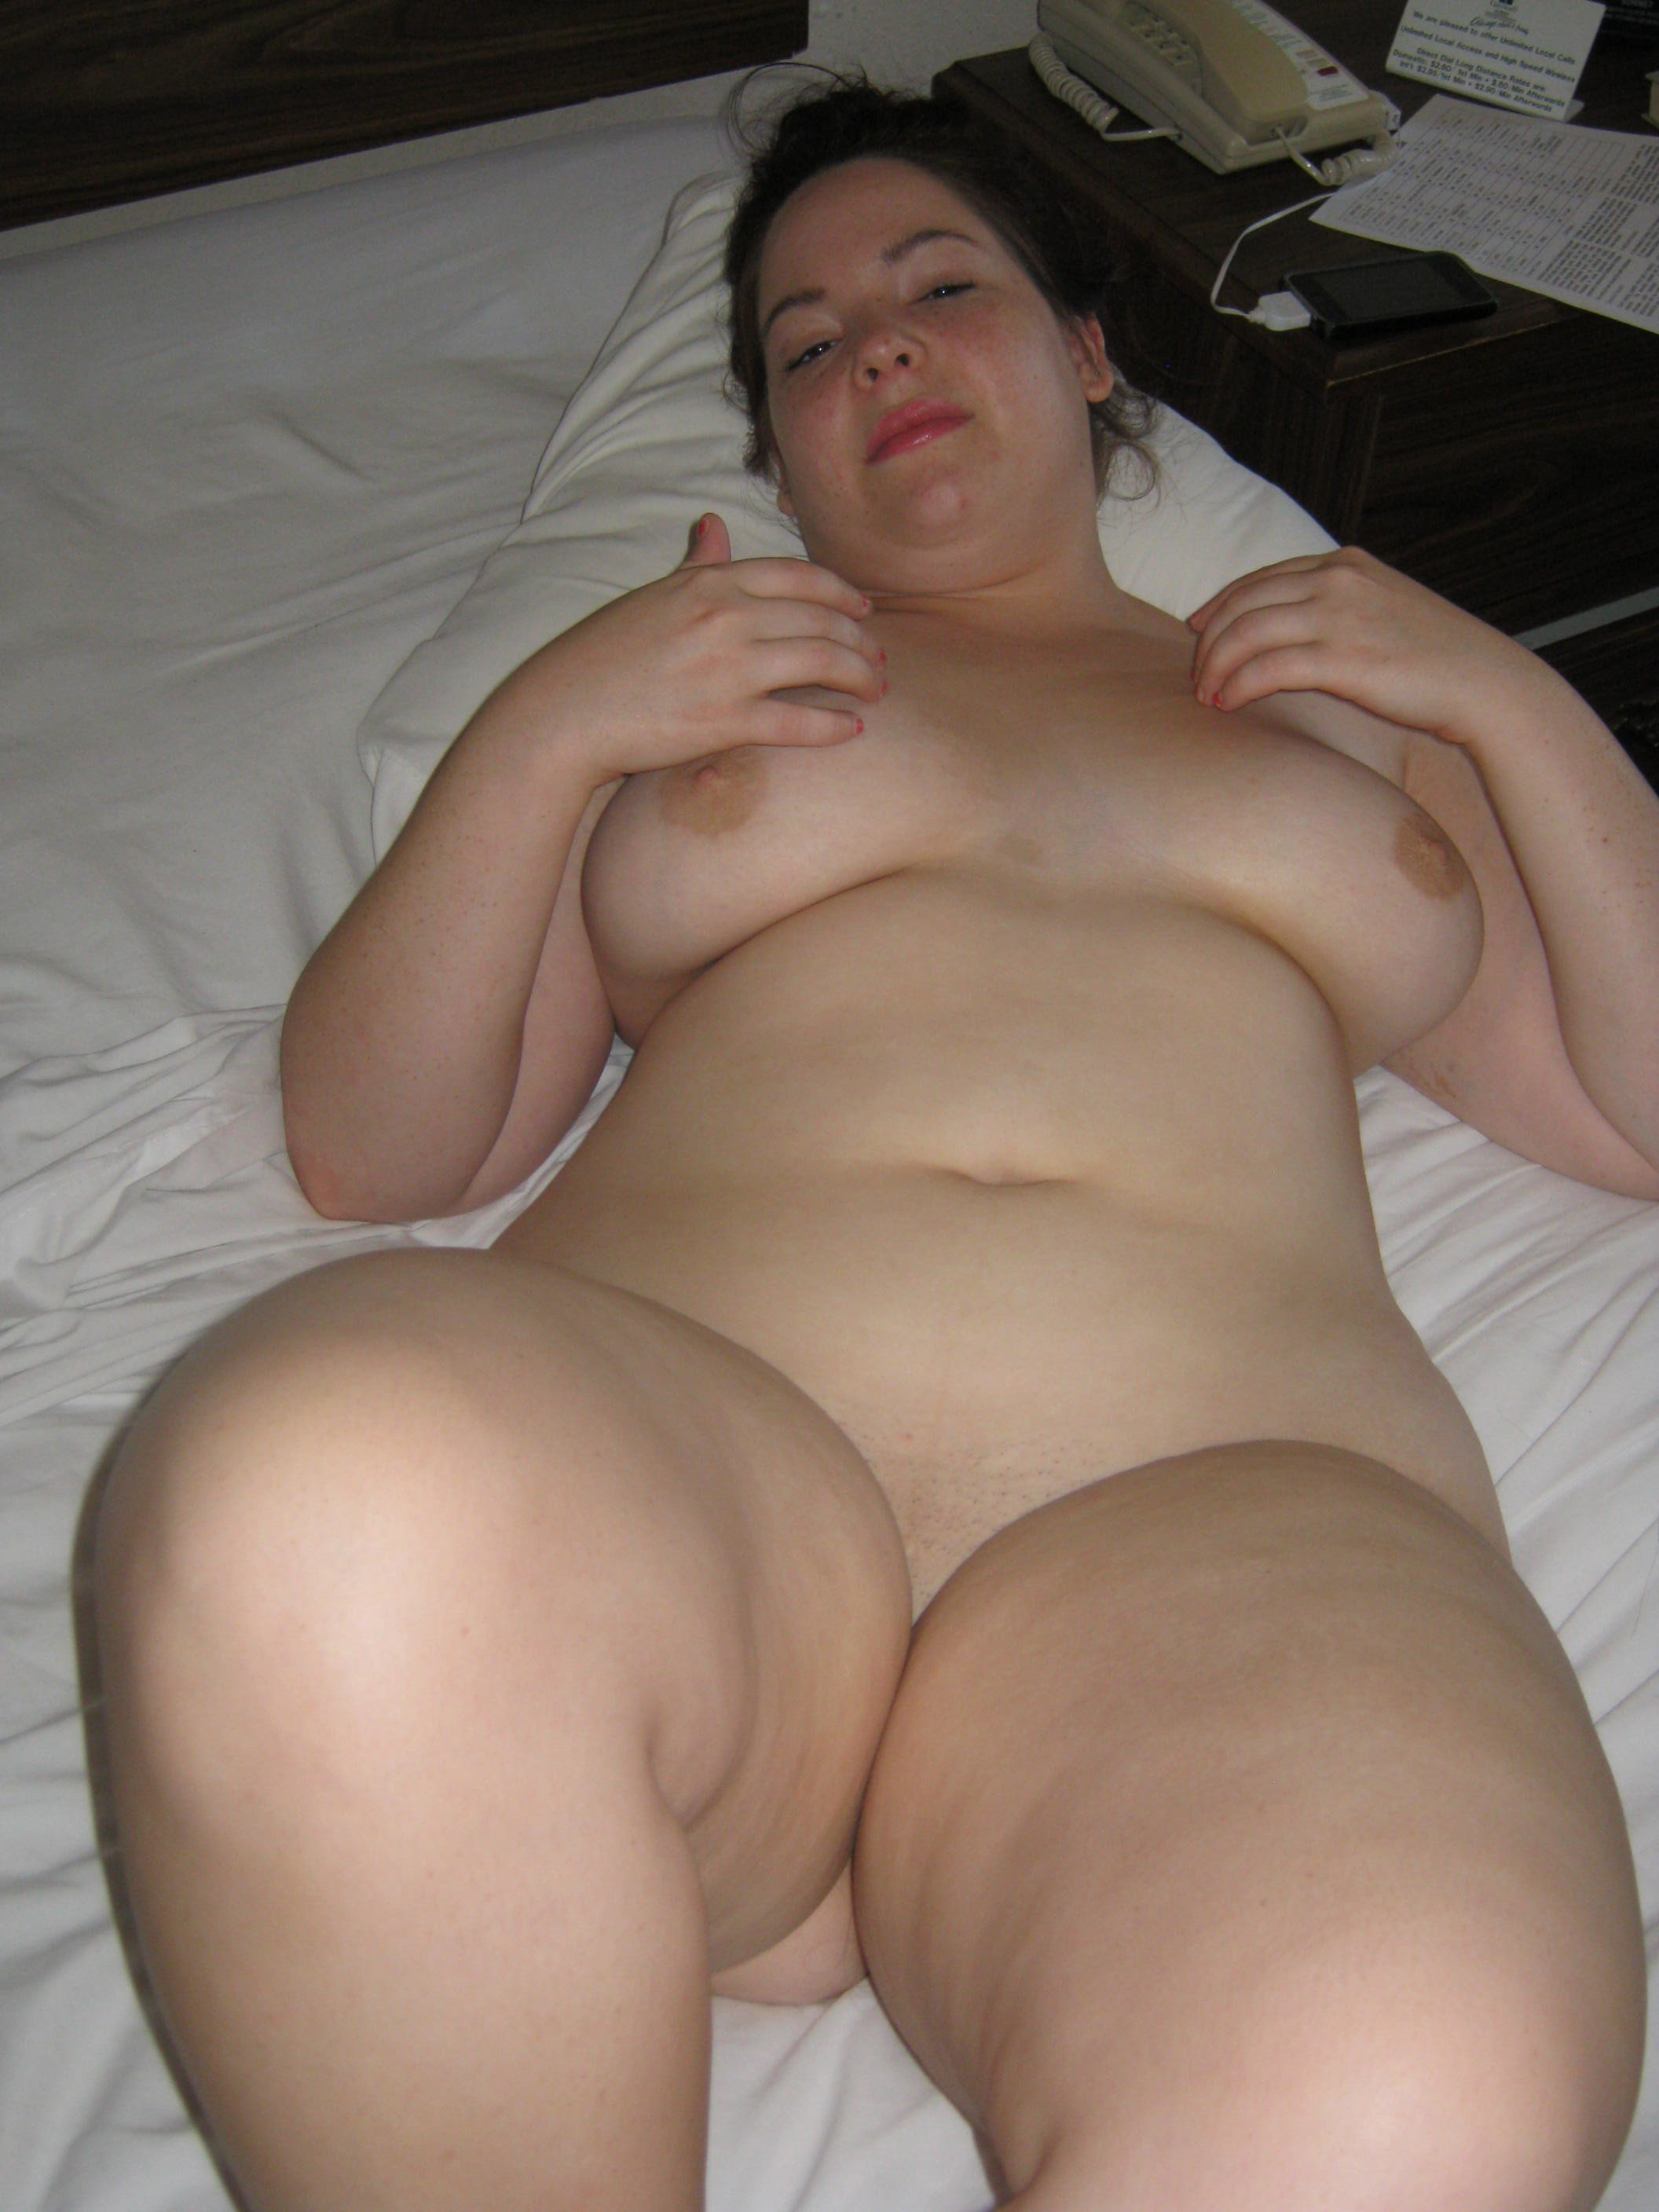 nude amateur over 50 wife tumblr